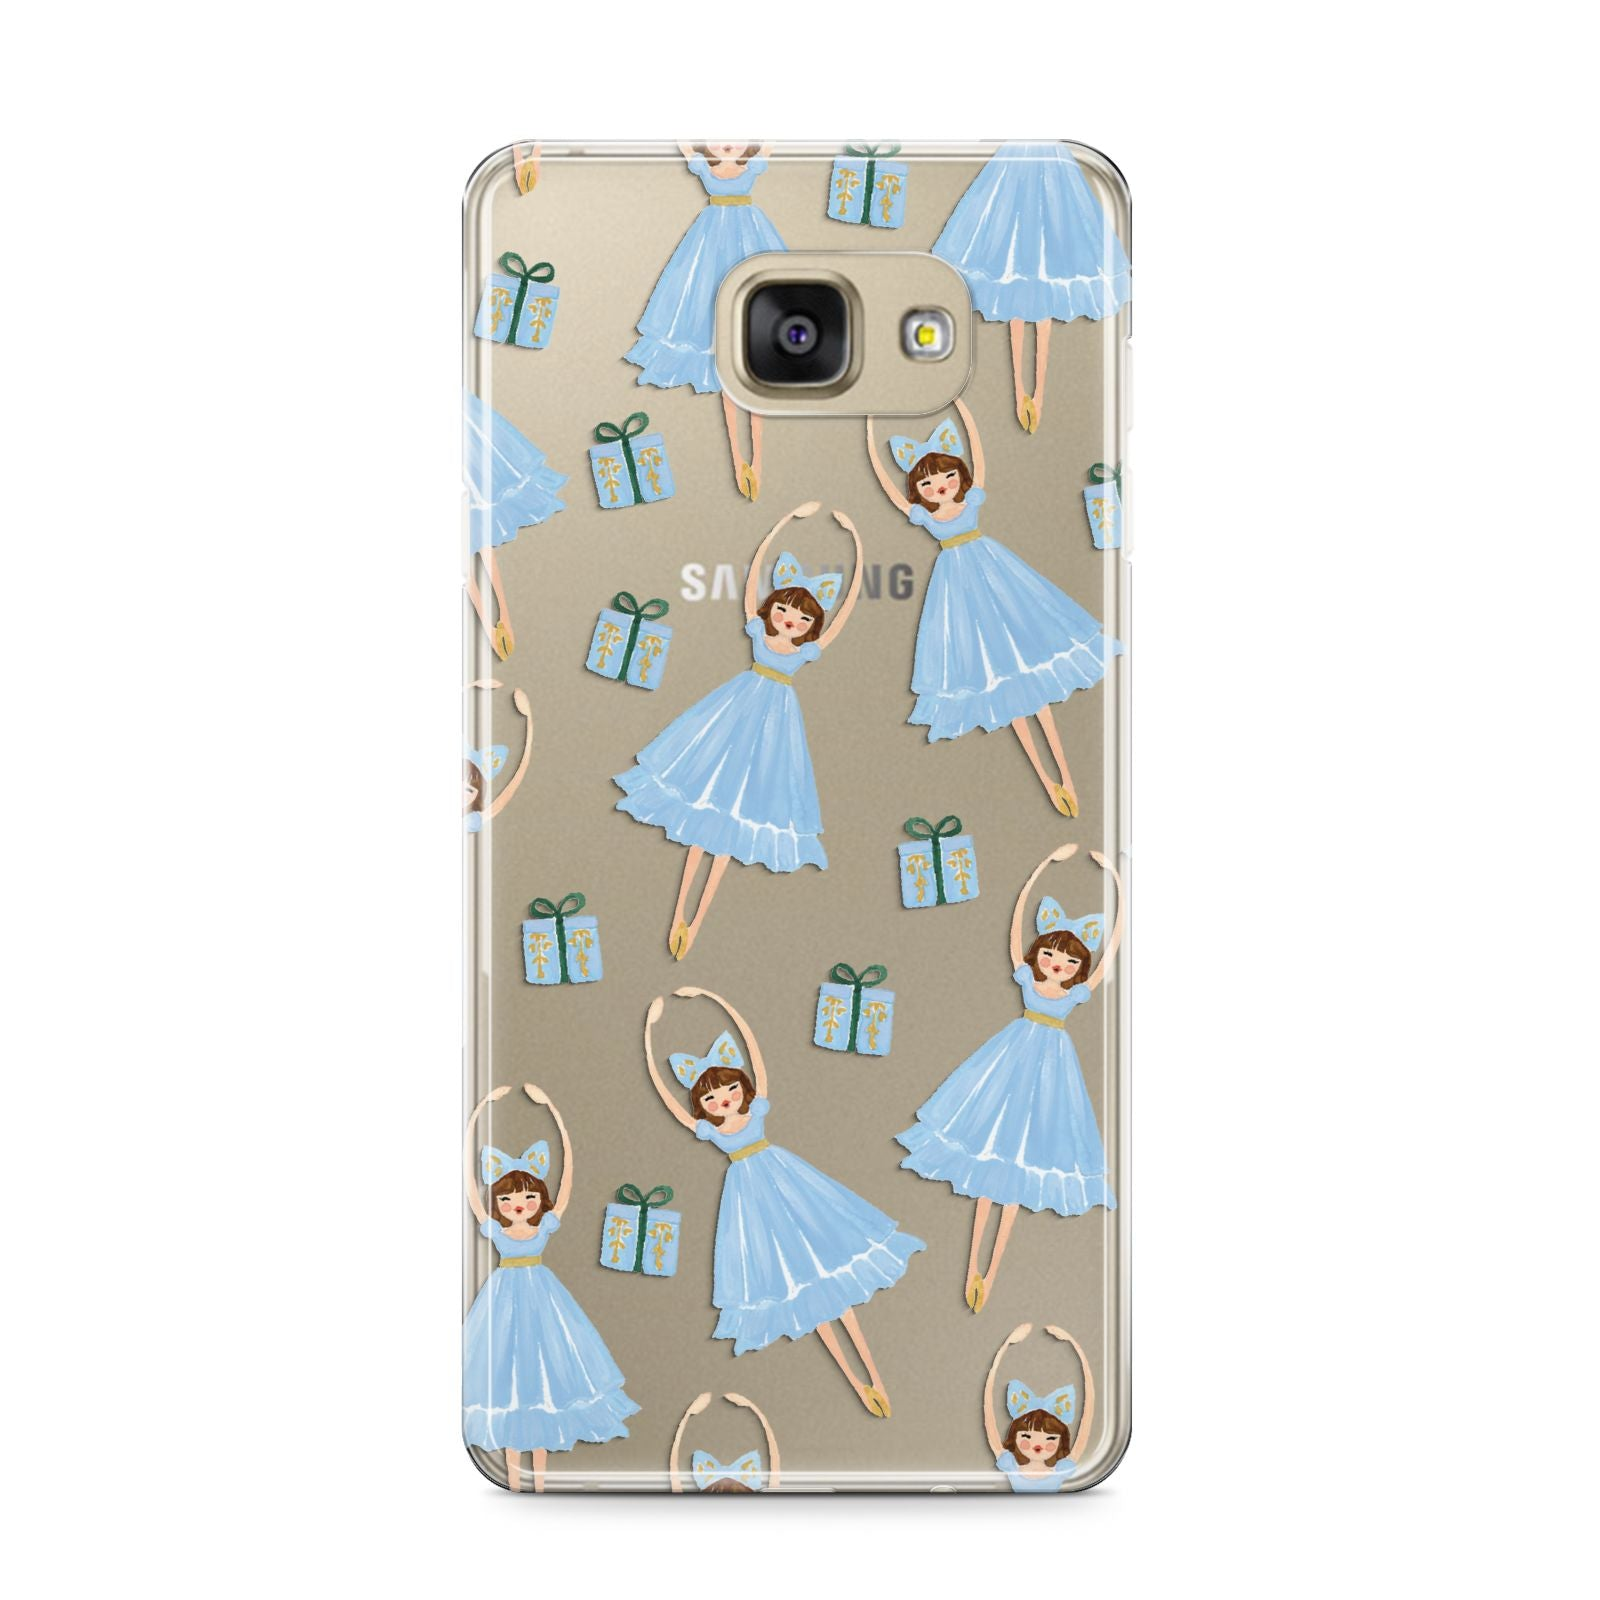 Christmas ballerina present Samsung Galaxy A9 2016 Case on gold phone